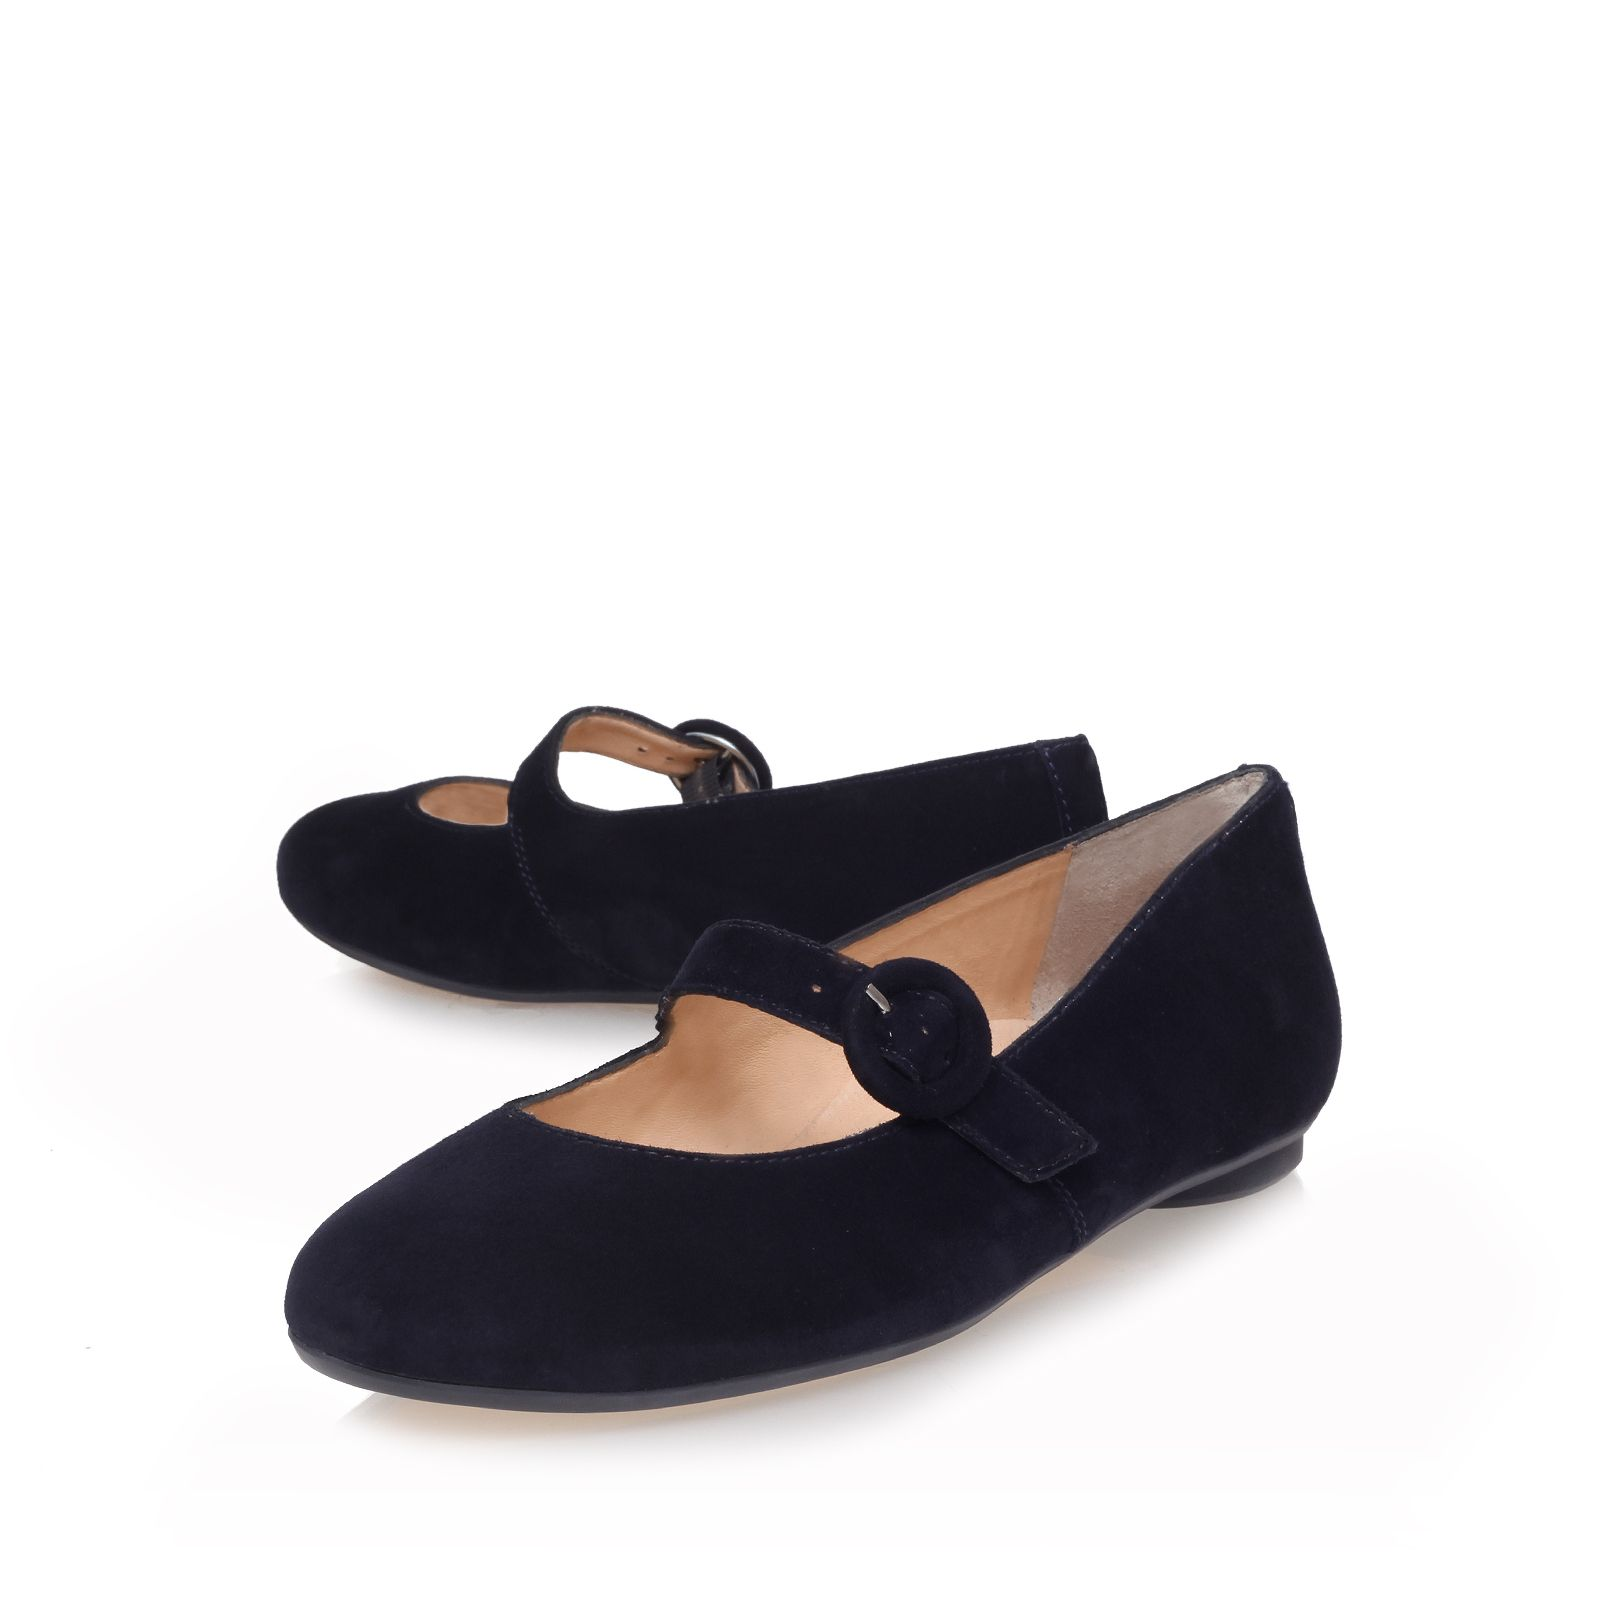 Clarissa flat shoes